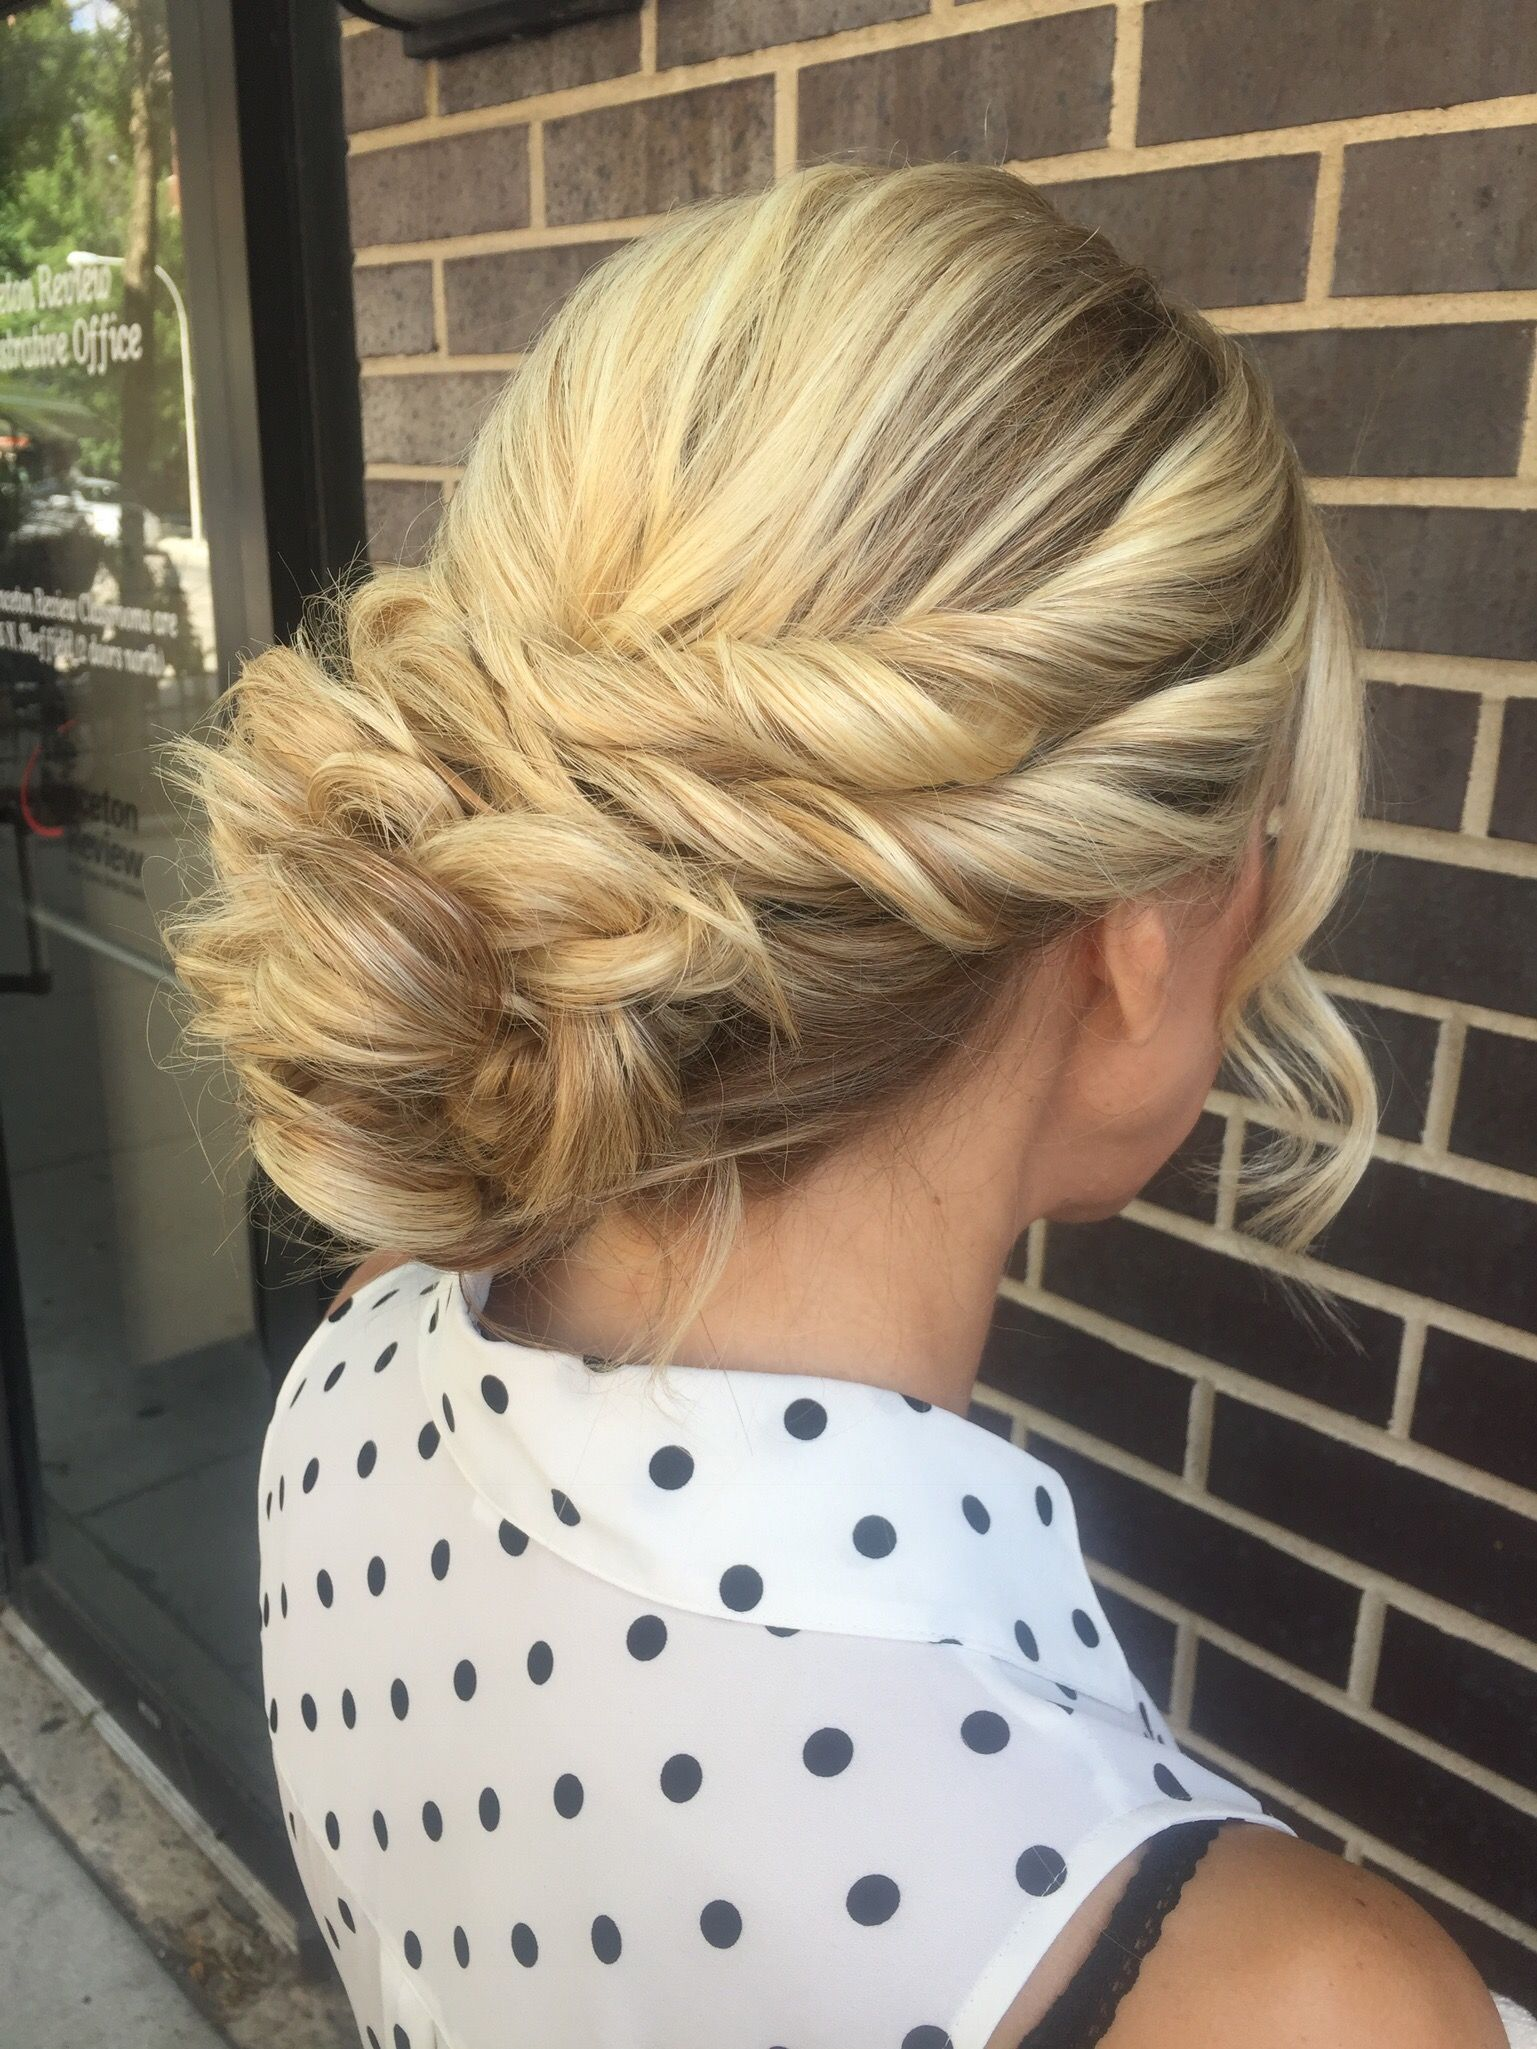 This elegant hairstyle features a double twisted crown curly updo